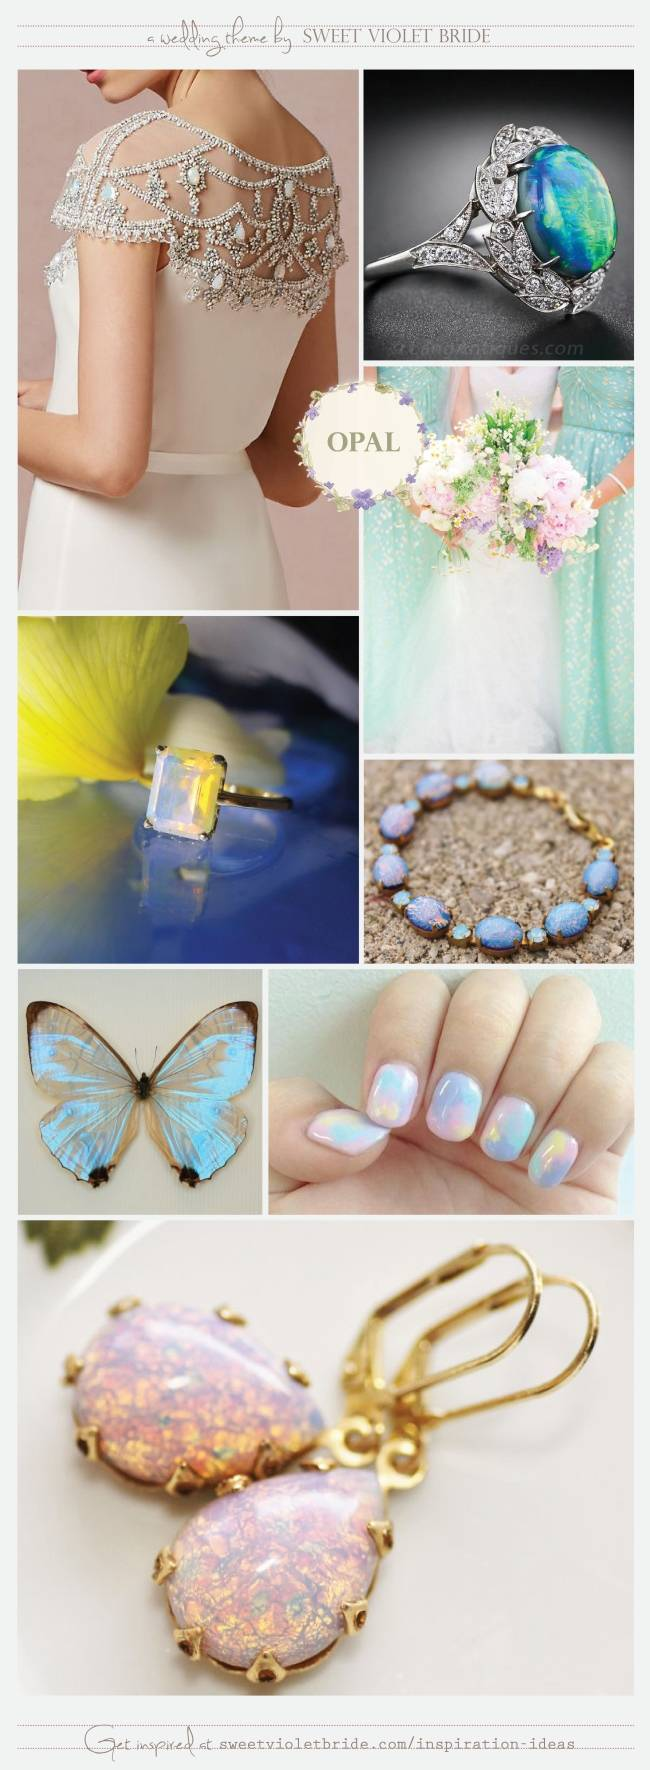 Opal Wedding Inspiration